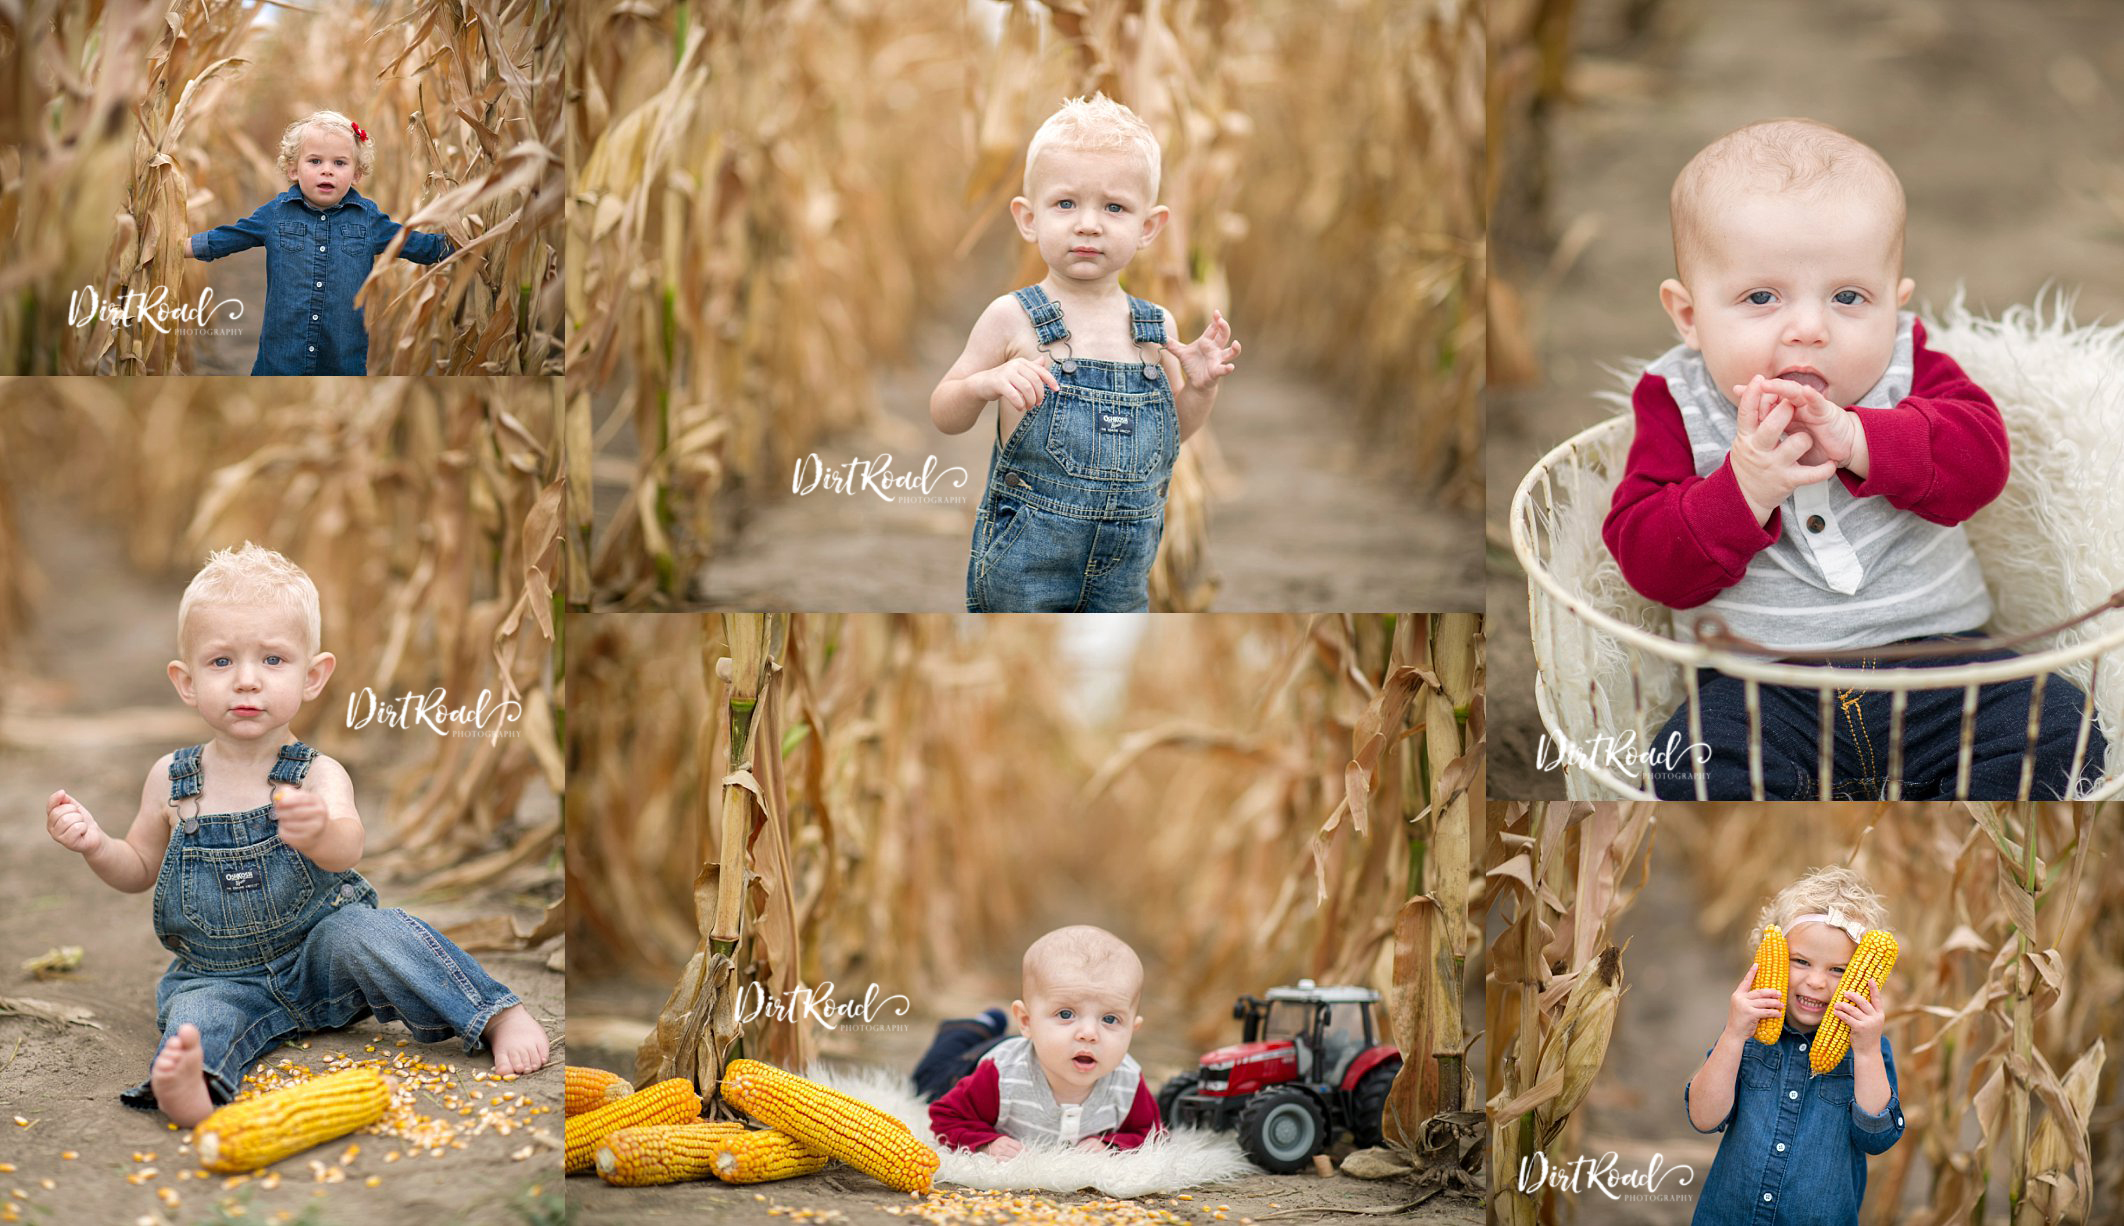 nebraska photographer, nebraska child photographer, southeast nebraska photographer, farm photographer in nebraska, nebraska kid photographer, wilber nebraska photographer, lincoln nebraska photographer, corn field mini session, nebraska corn field, nebraska corn photographer, Nebraska Photographer, Nebraska Newborn Photographer, Nebraska Family Photographer, Nebraska Senior Photographer, Nebraska Child Photographer, Wilber Nebraska, Dorchester Nebraska, Crete Nebraska, Friend Nebraska, DeWitt Nebraska, Plymouth Nebraska, Roca Nebraska, Sprague Nebraska, Martell Nebraska, Kramer Nebraska, Lincoln Nebraska, Milford Nebraska, Wilber Nebraska Photographer, Dorchester Nebraska Photographer, Crete Nebraska Photographer, Friend Nebraska Photographer, DeWitt Nebraska Photographer, Plymouth Nebraska Photographer, Roca Nebraska Photographer, Sprague Nebraska Photographer, Martell Nebraska Photographer, Kramer Nebraska Photographer, Lincoln Nebraska Photographer, Milford Nebraska Photographer